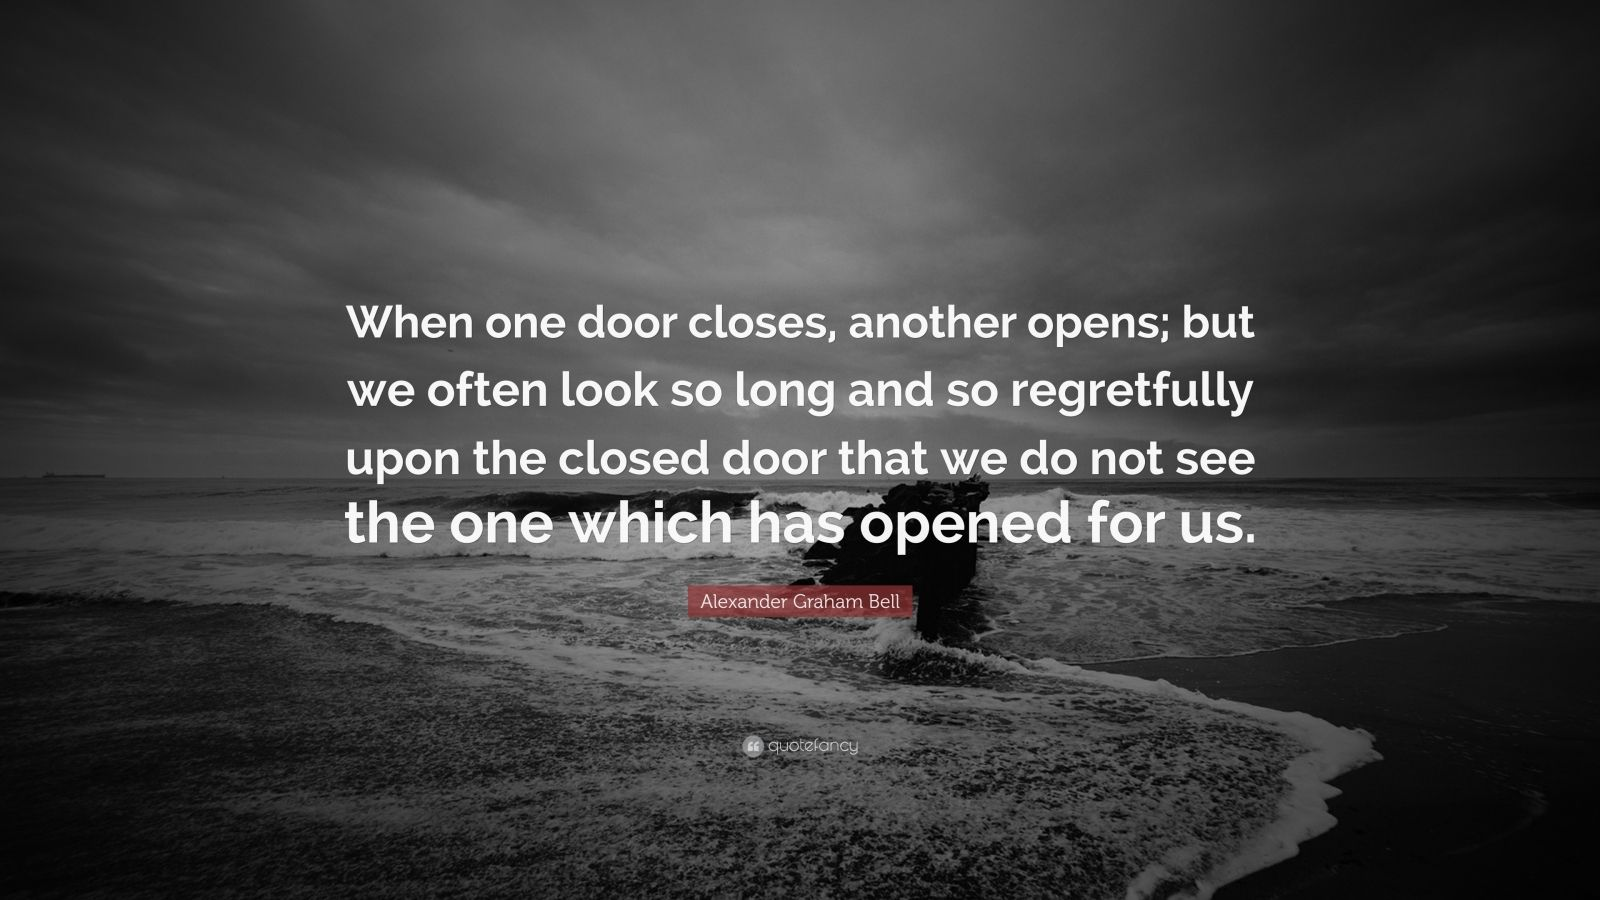 Quotes About One Door Closing And Another Opening